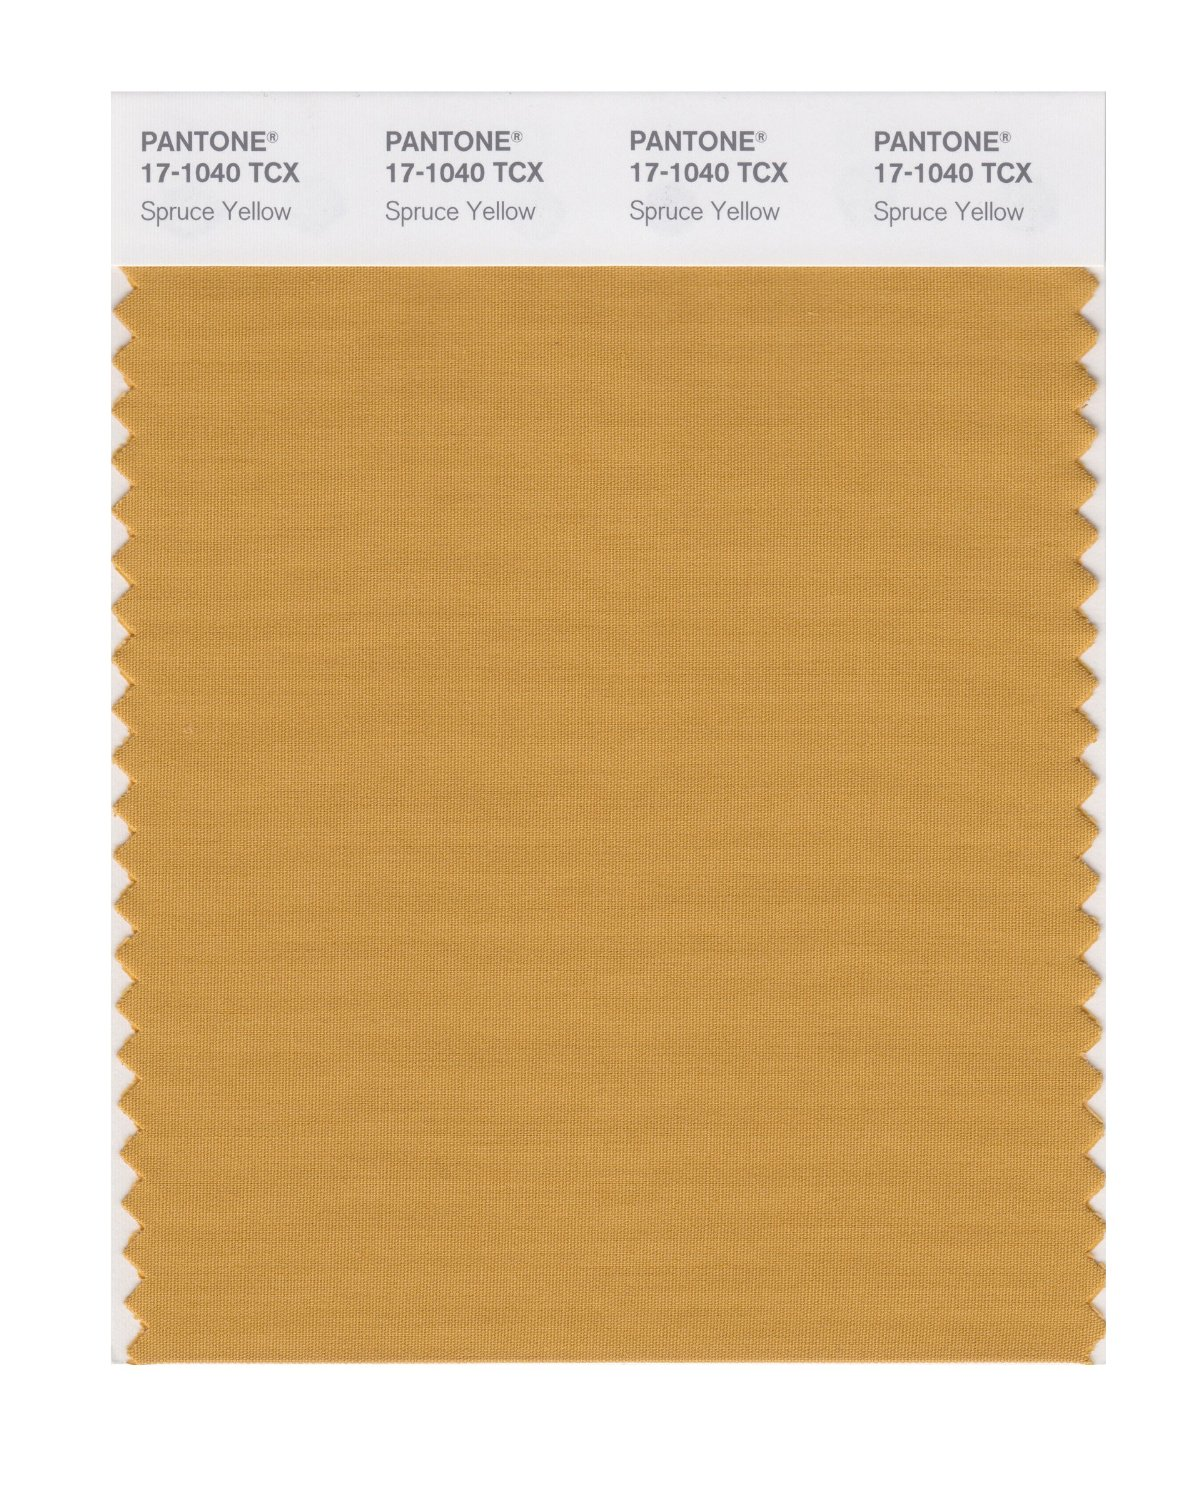 Pantone Smart Swatch 17-1040 Spruce Yellow